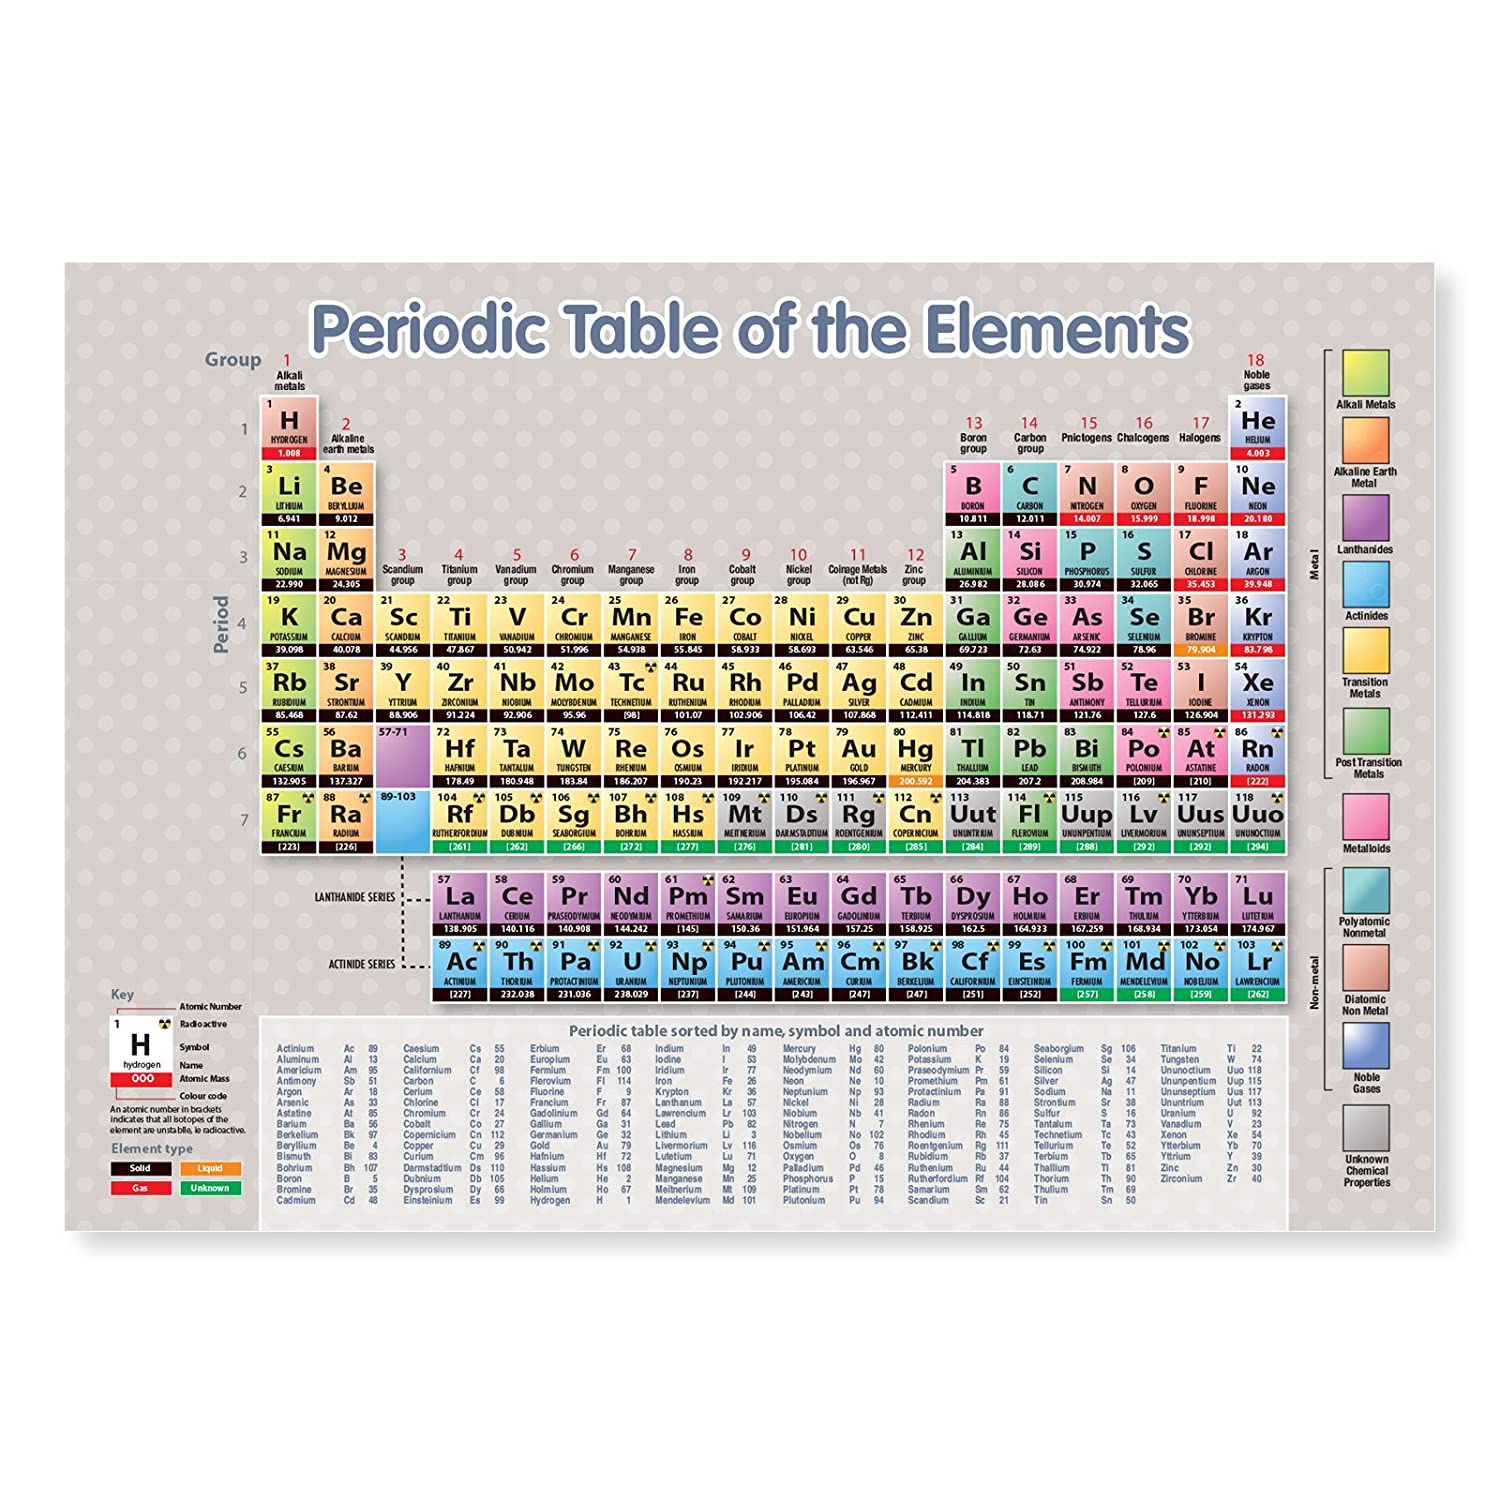 Periodic table chalcogens images periodic table images a3 laminated periodic table of the elements science educational a3 laminated periodic table of the elements gamestrikefo Images